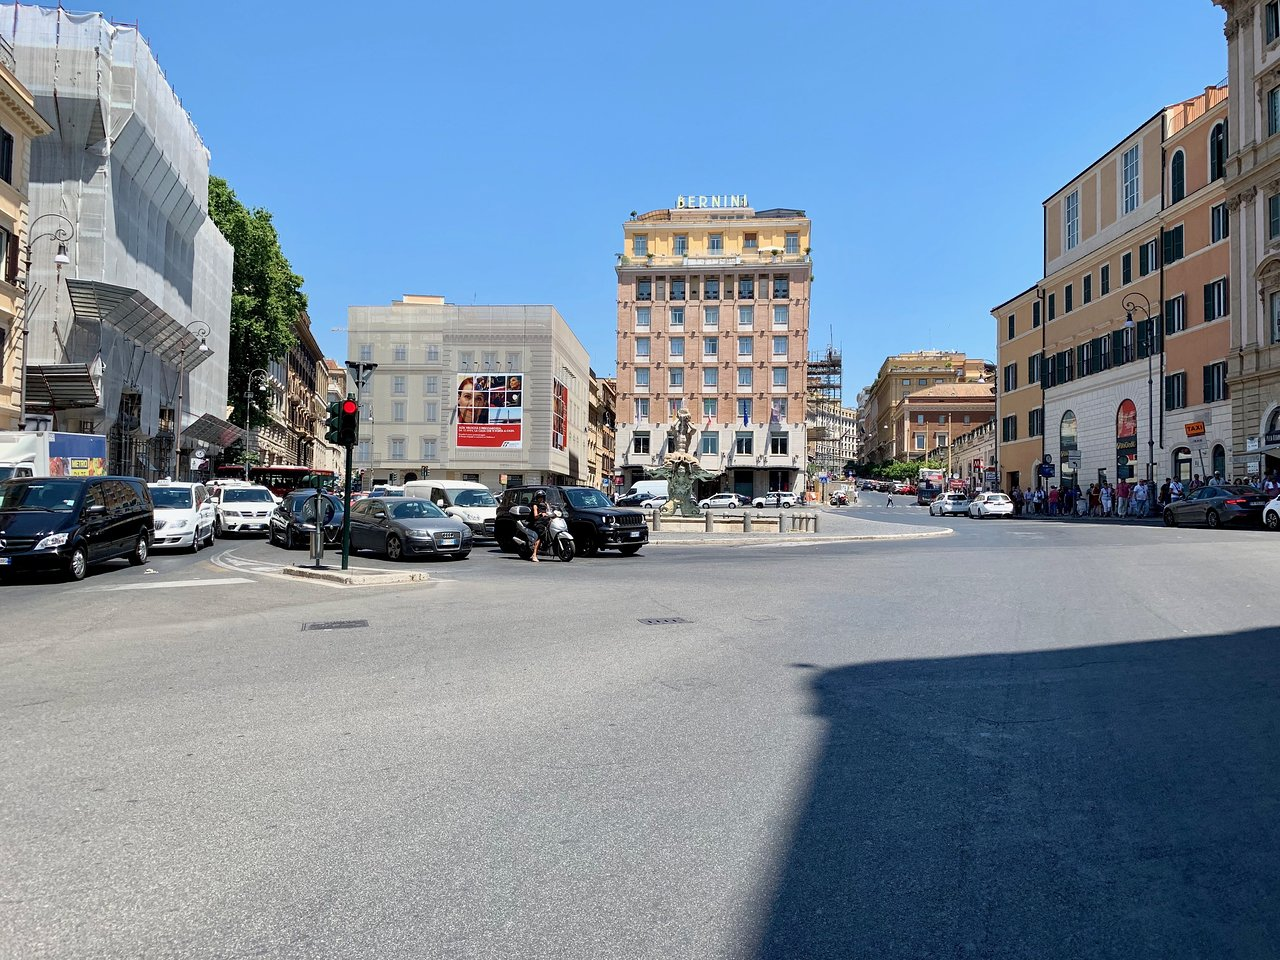 Piazza Barberini Rome 2020 All You Need To Know Before